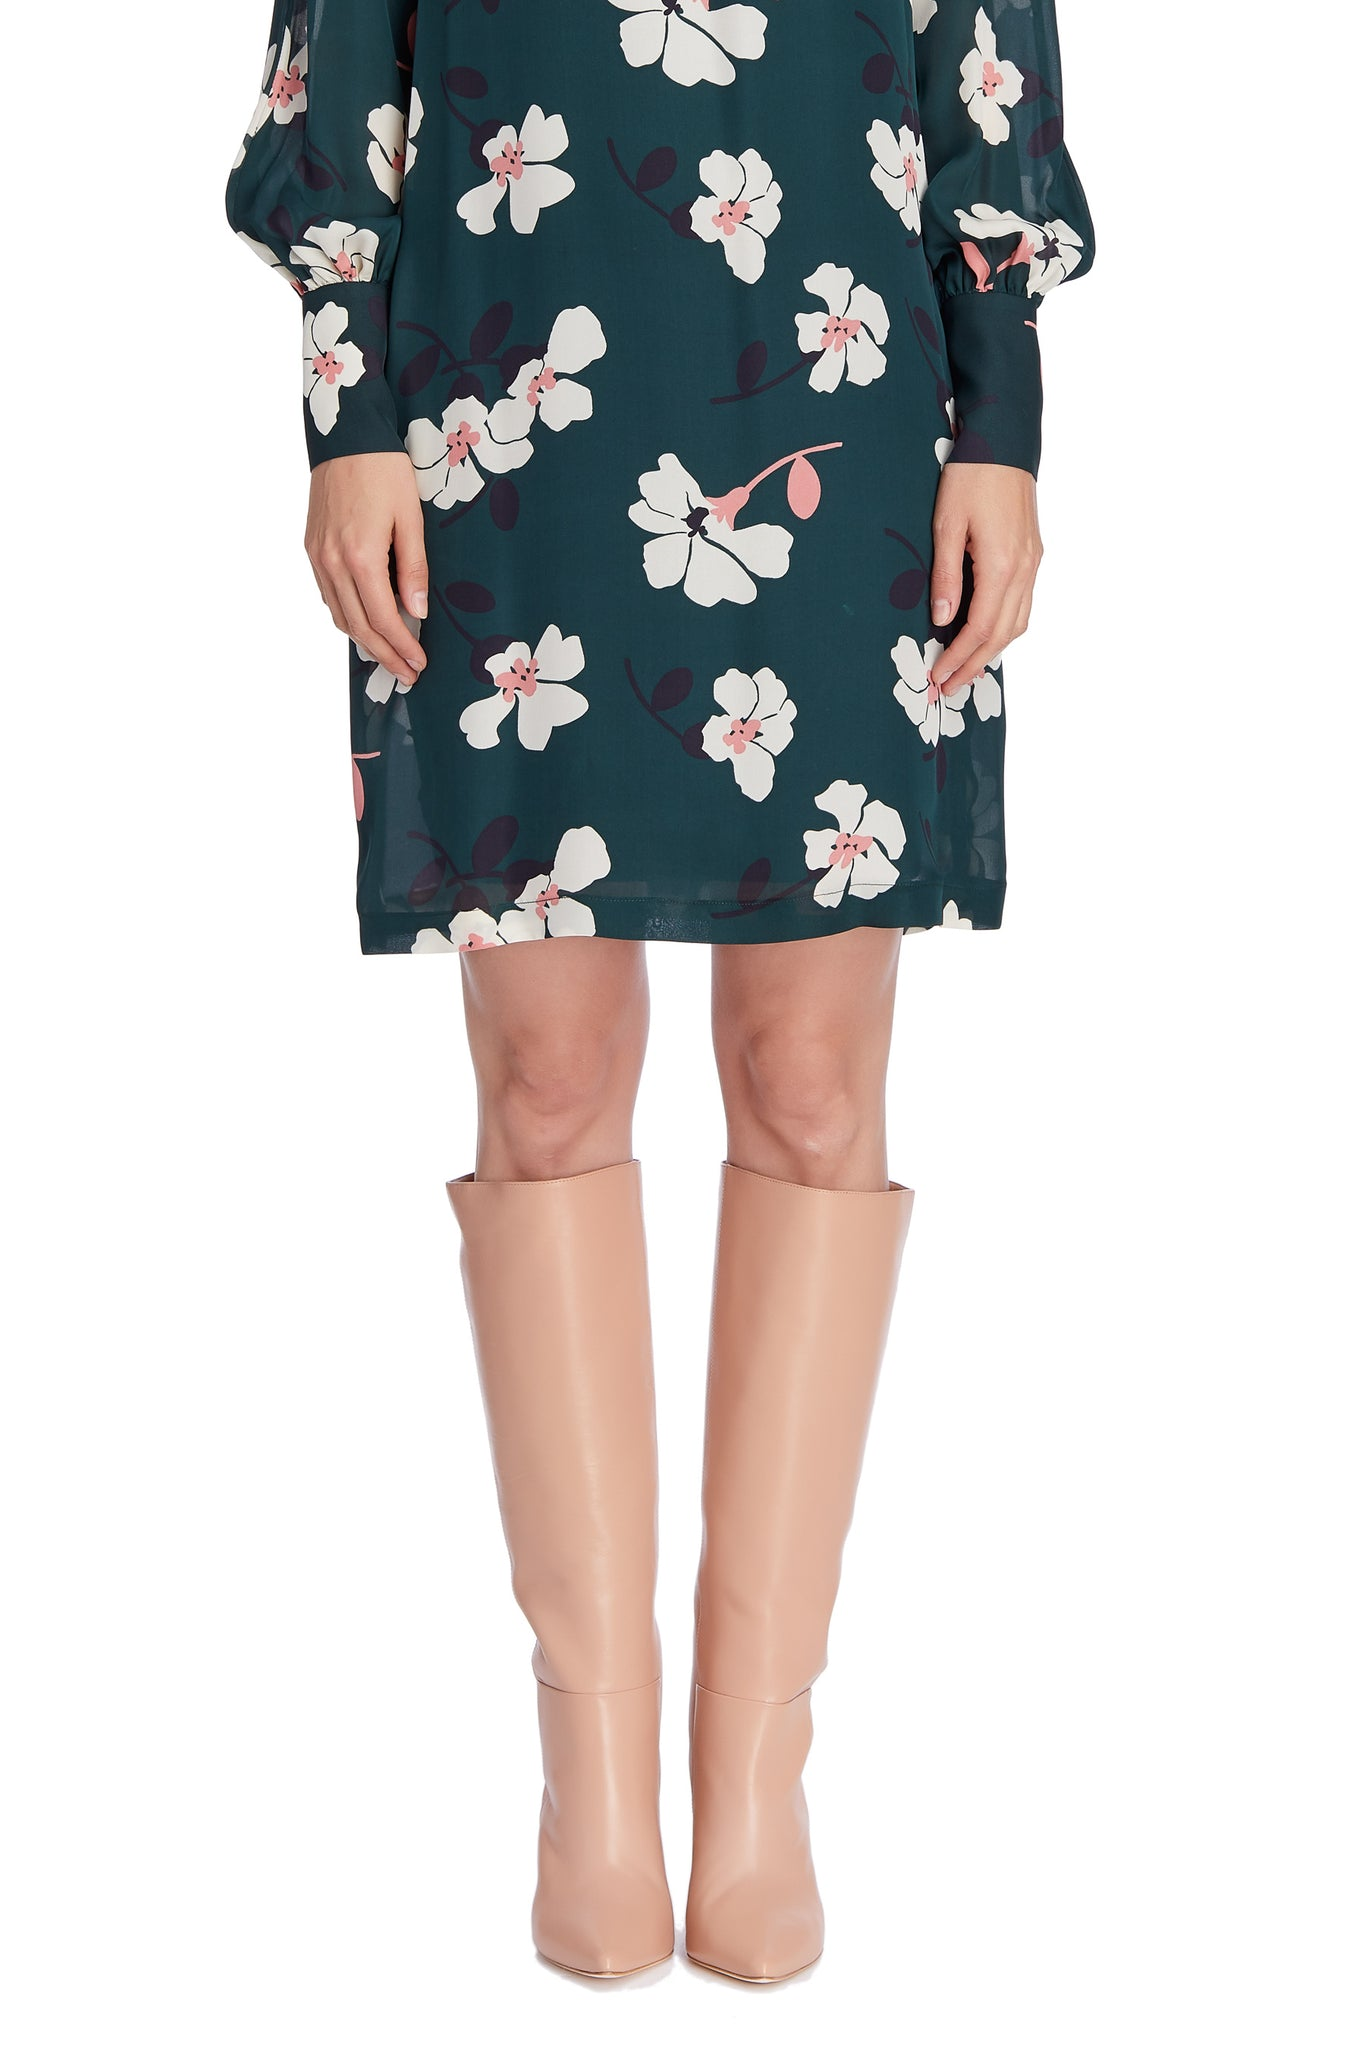 Kiki Short Dress | Robe Kiki courte